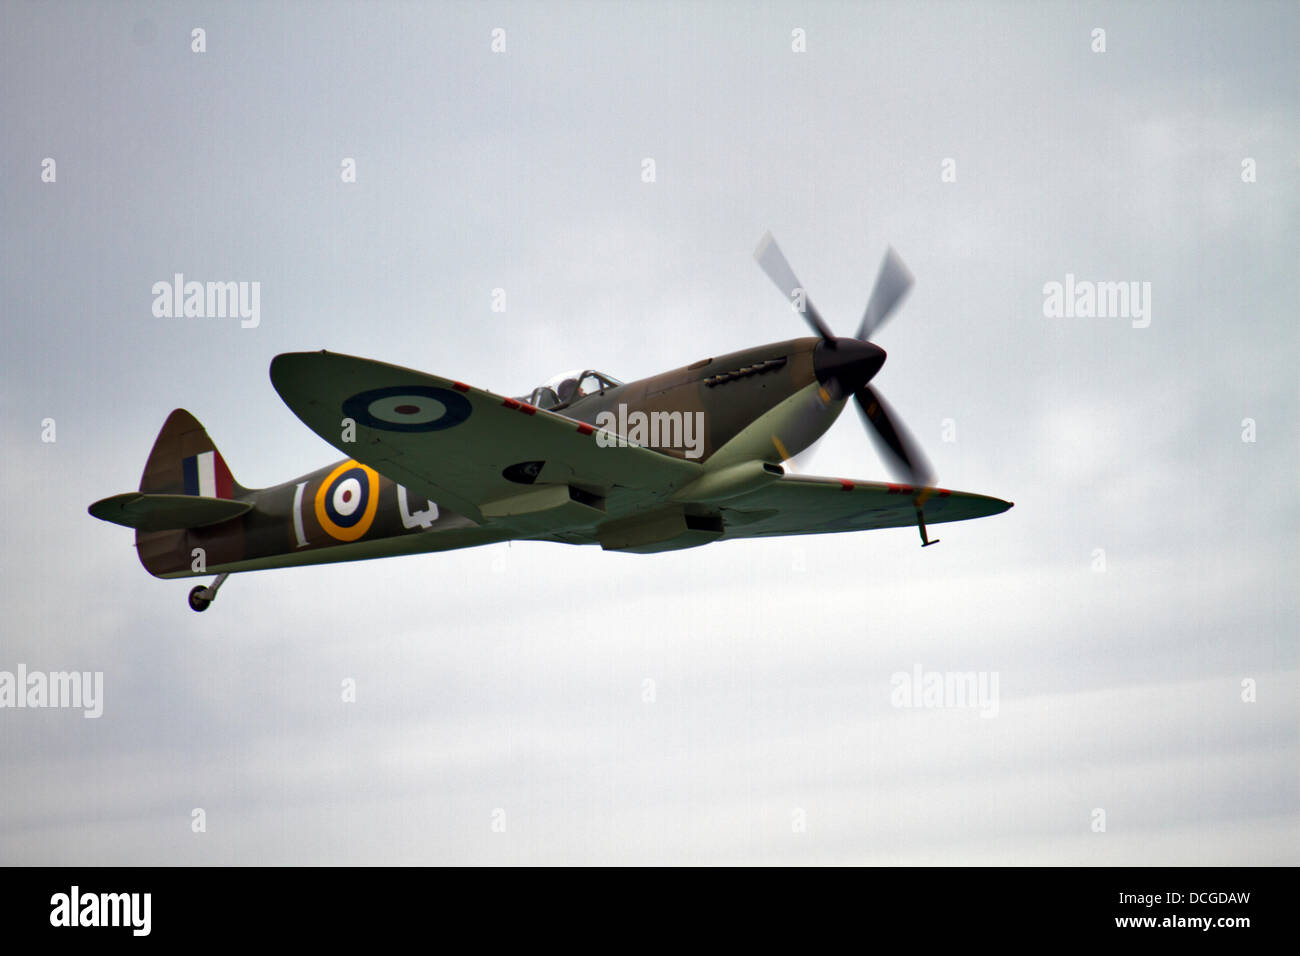 Eastbourne, East Sussex, UK. 16 August 2013. Spitfire Mk IX at Airbourne, the Eastbourne air show 2013. Credit: - Stock Image